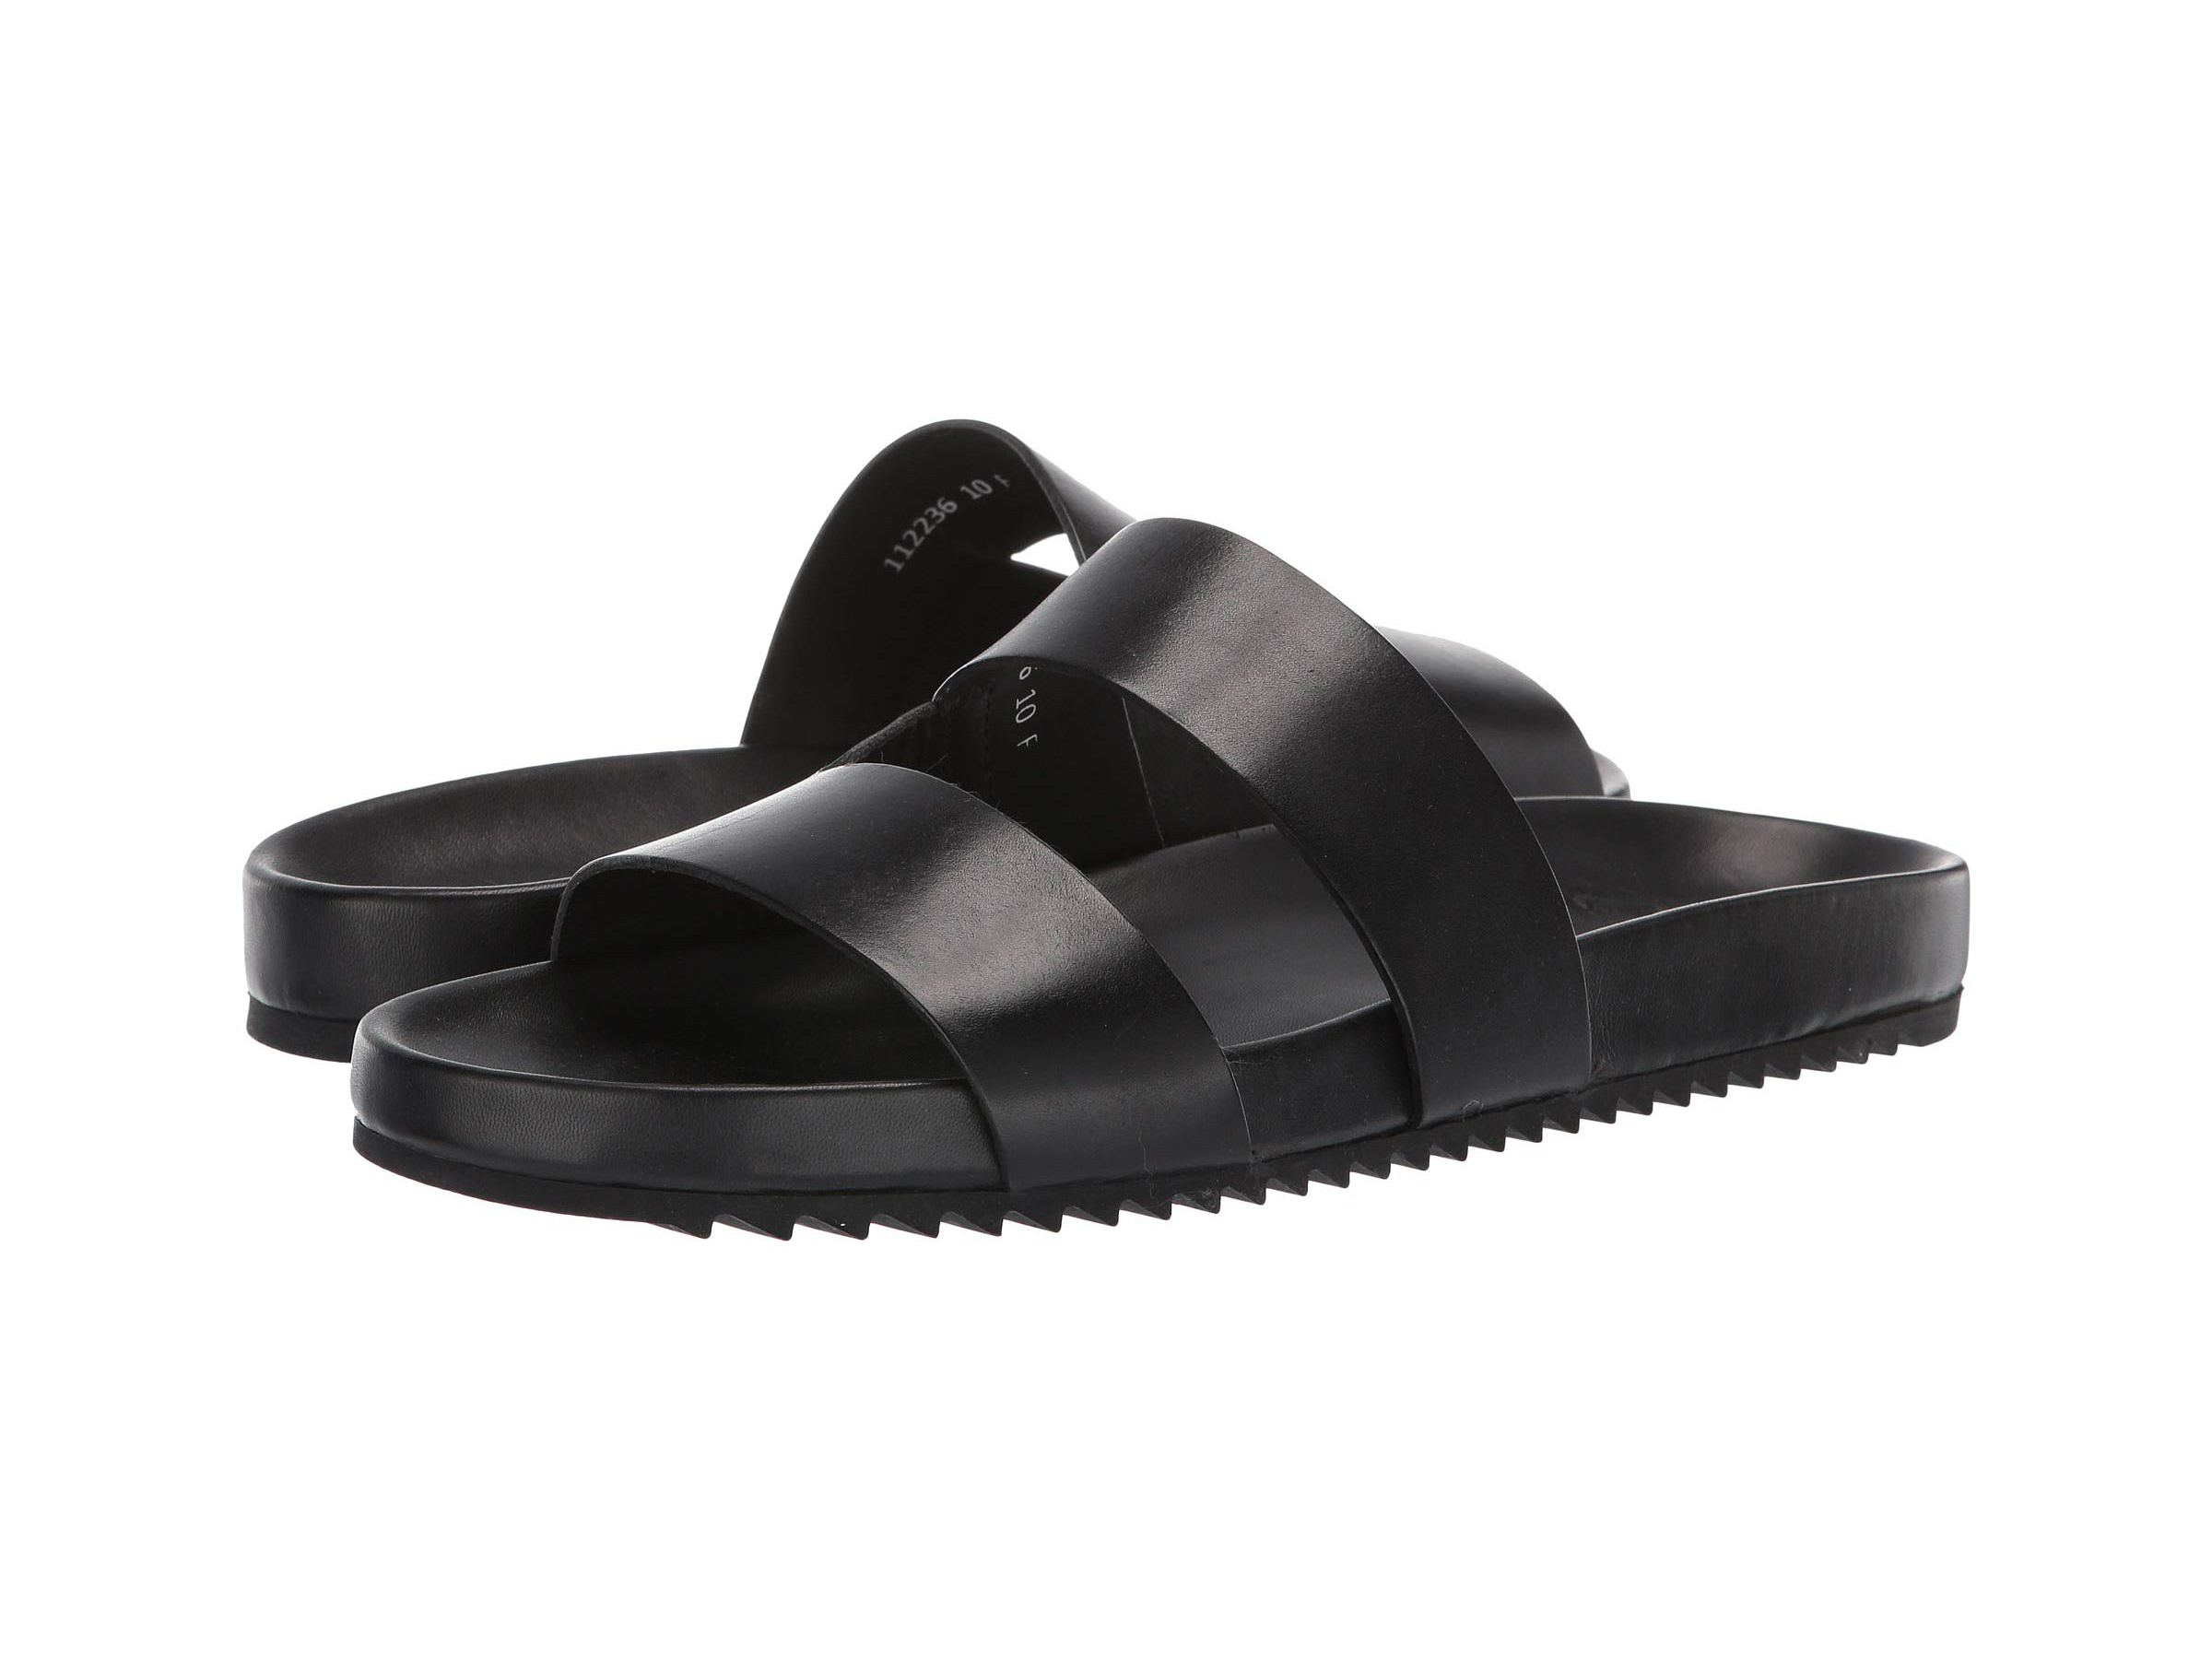 Wear Sandals in the Office: The Best